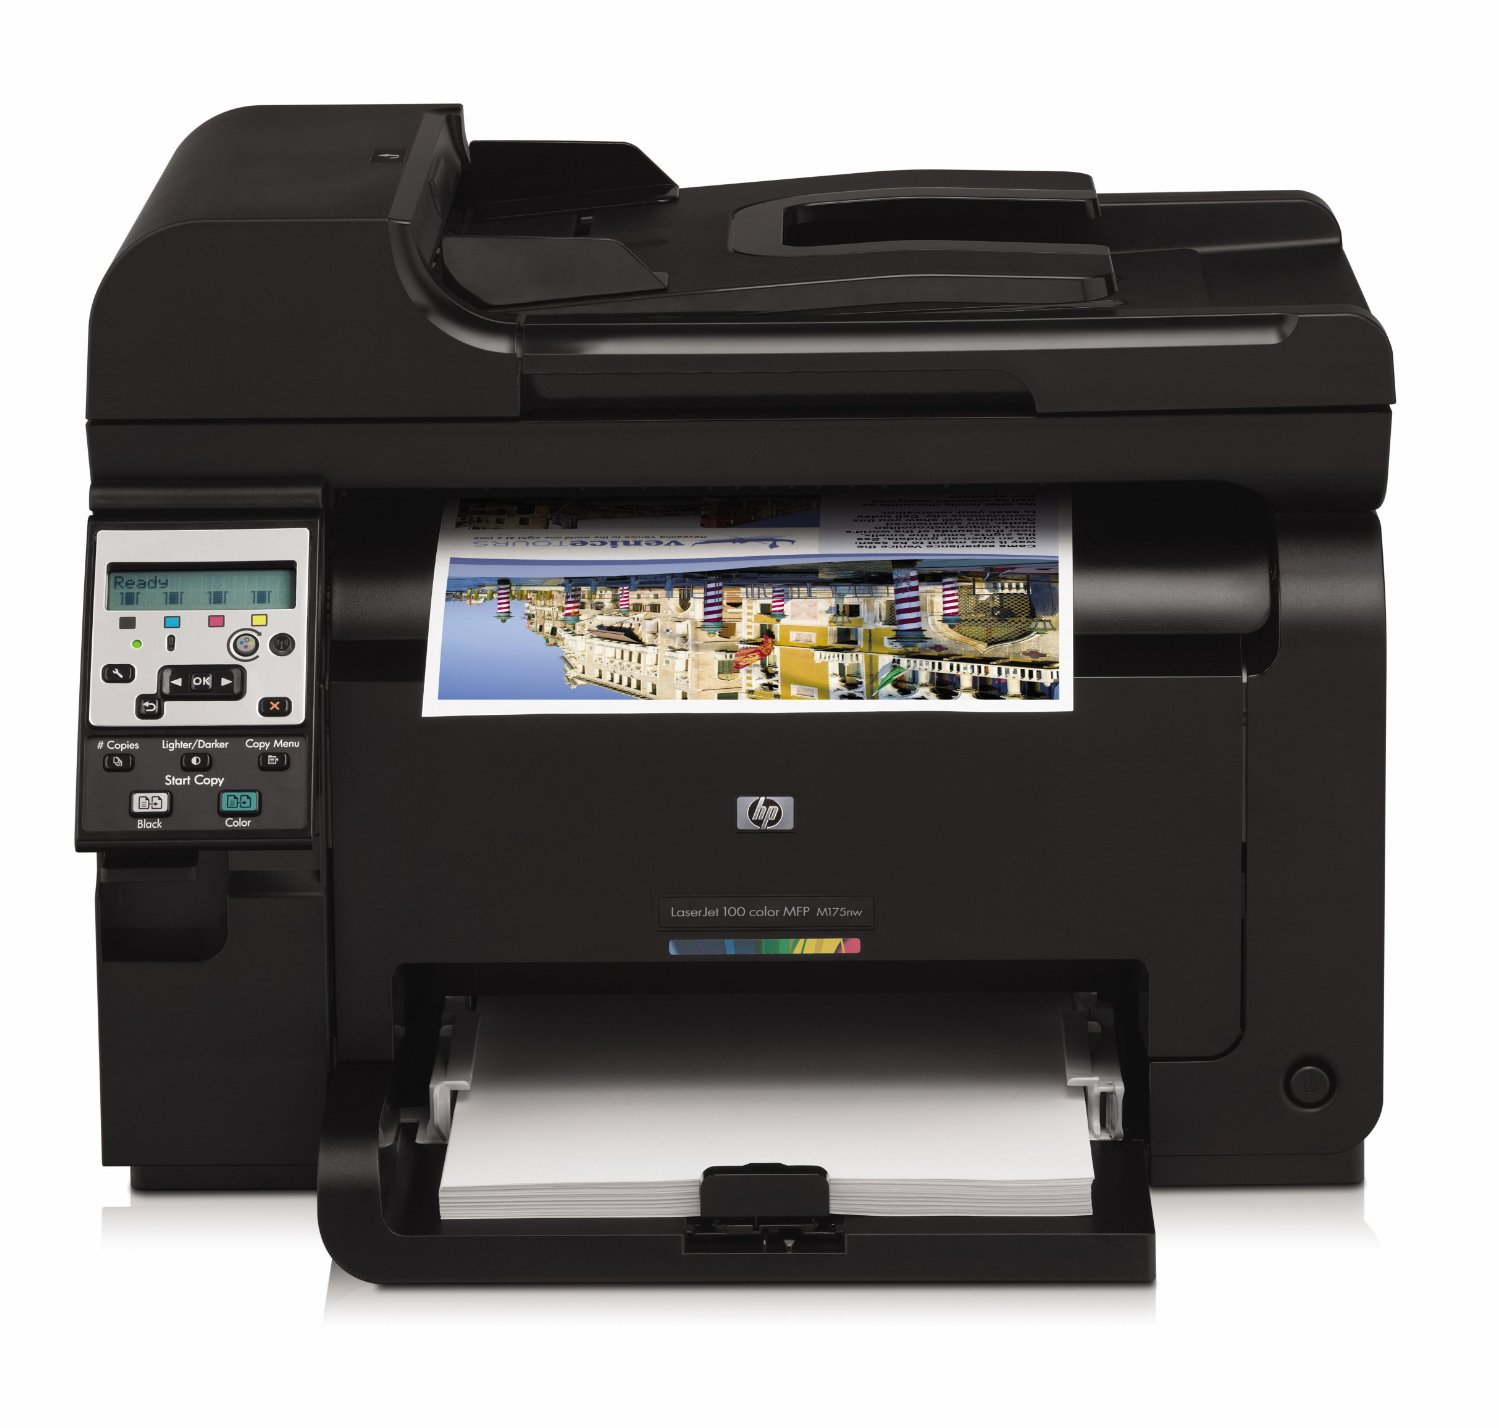 Packard laserjet ce866a wireless color printer with scanner and copier